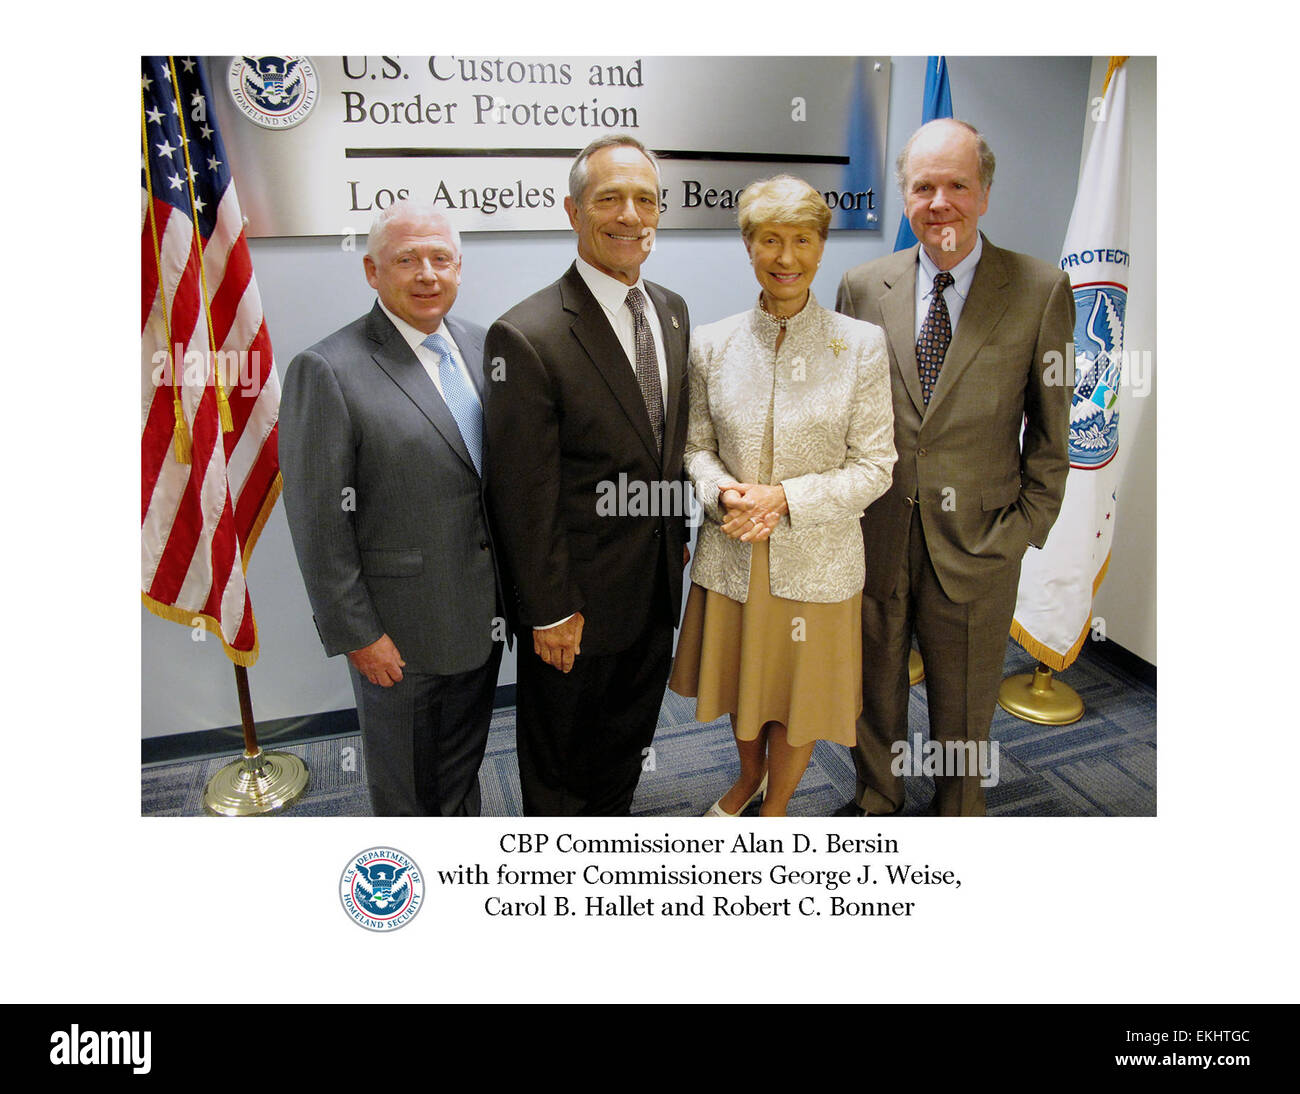 FORMERS: August 2011: U.S. Customs & Border Protection Commissioner Alan D. Bersin and former Commissioners - Stock Image